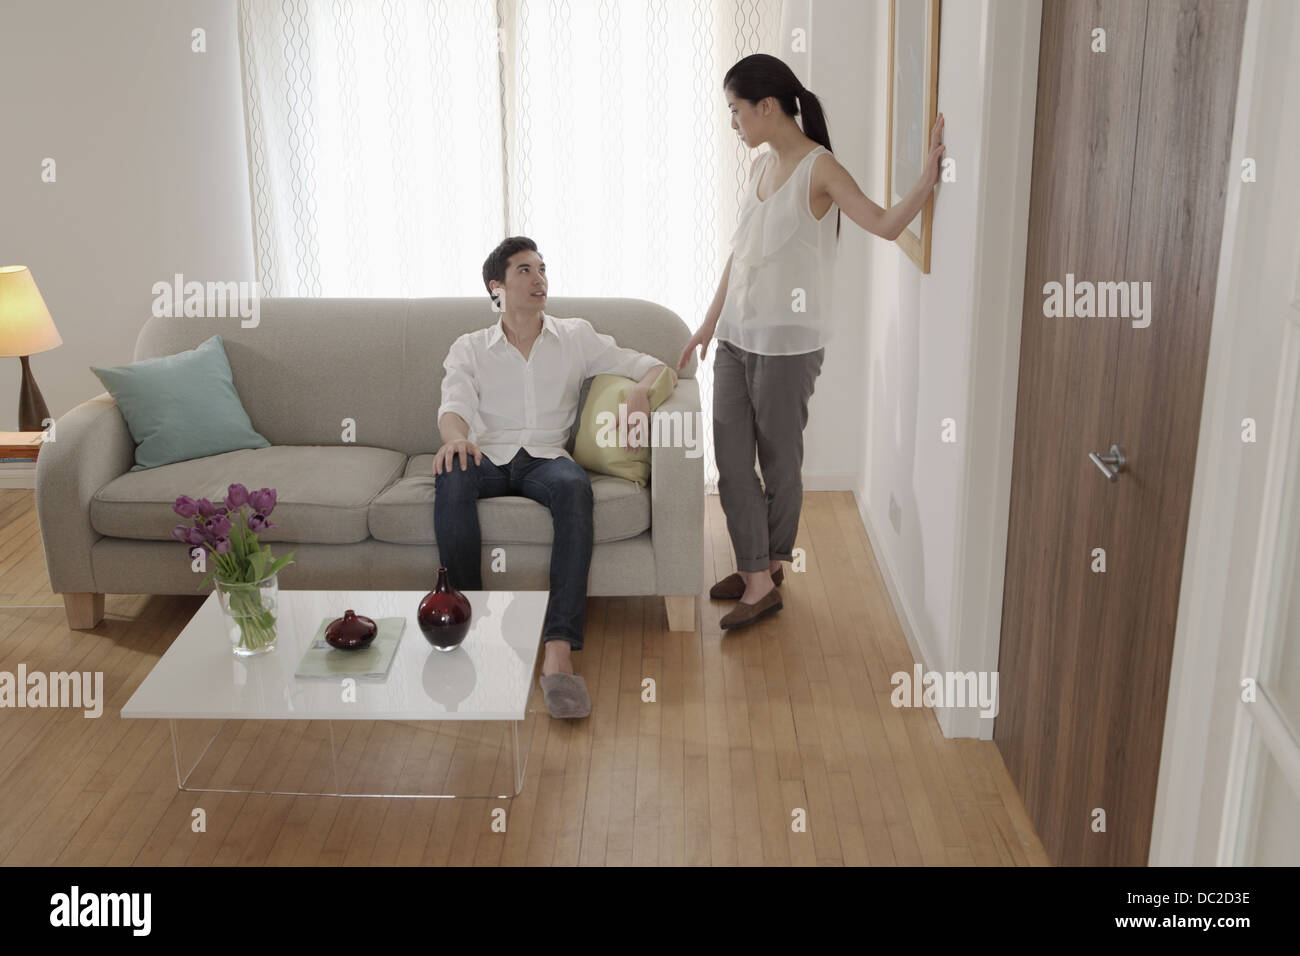 Couple discussing in living room - Stock Image